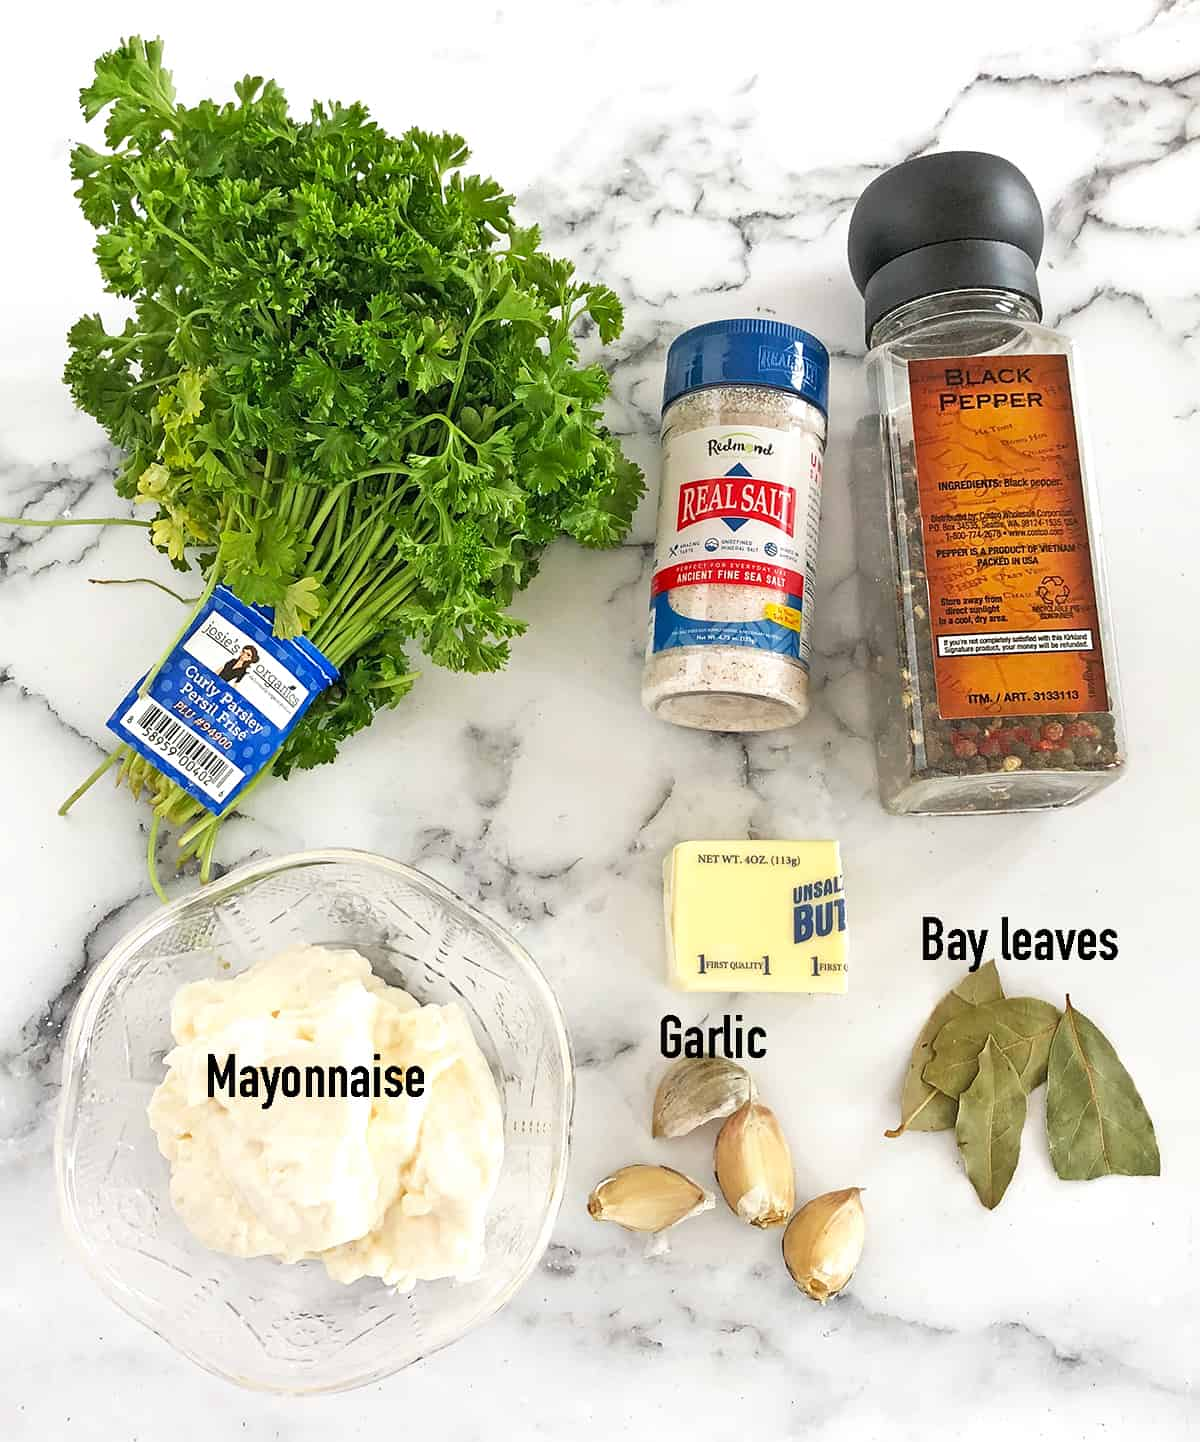 Ingredients for the Scalloped Potatoes with Carrots